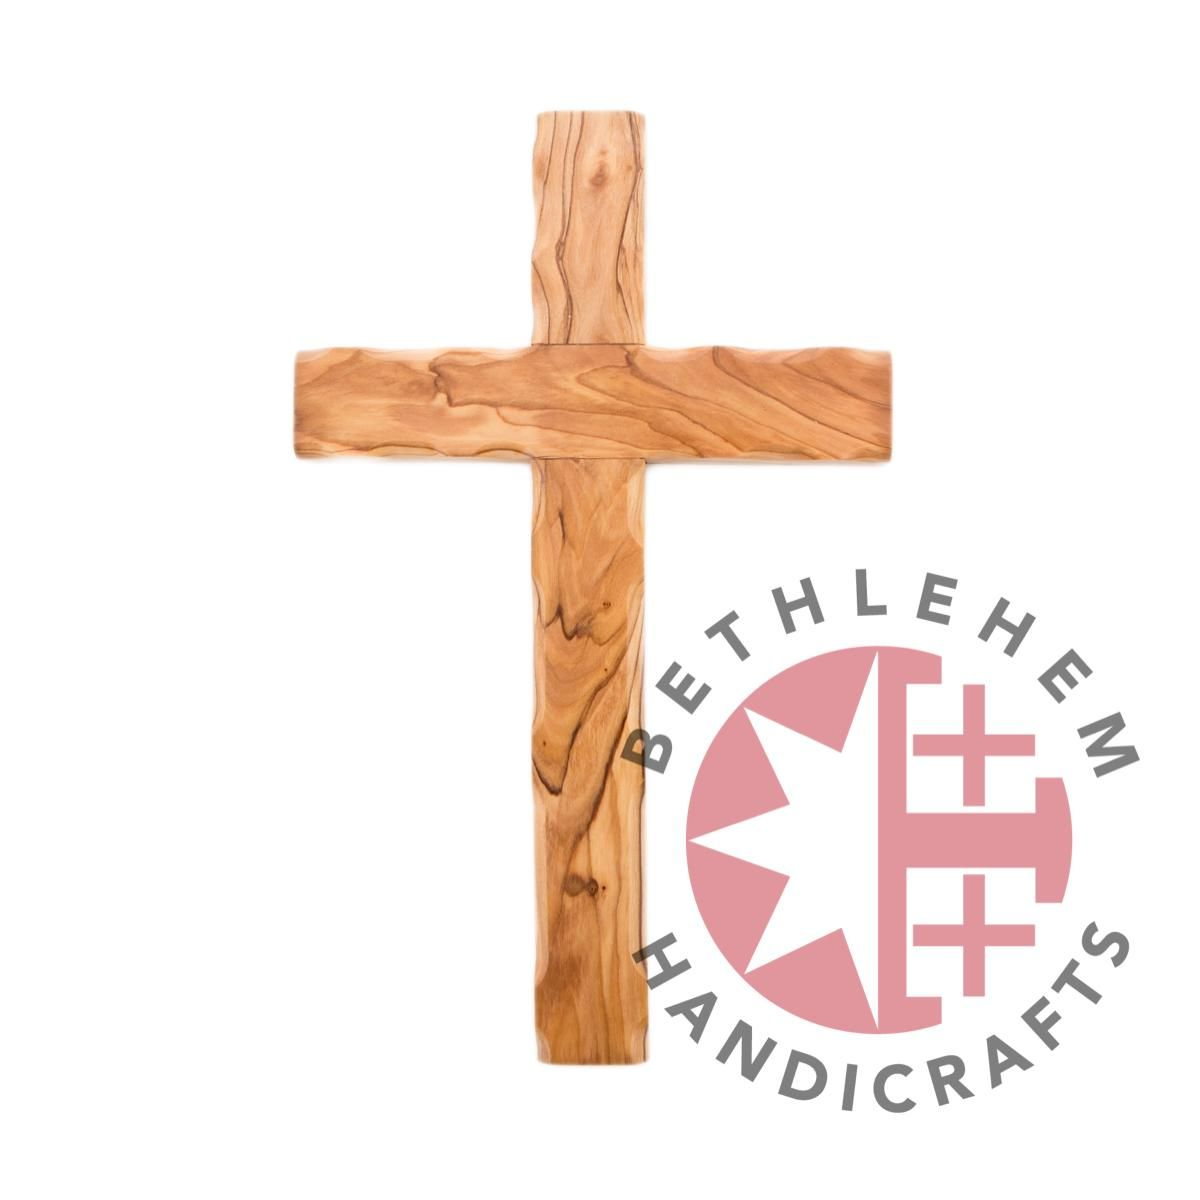 Wood carved cross as we place jesus christ in our hearts and seek